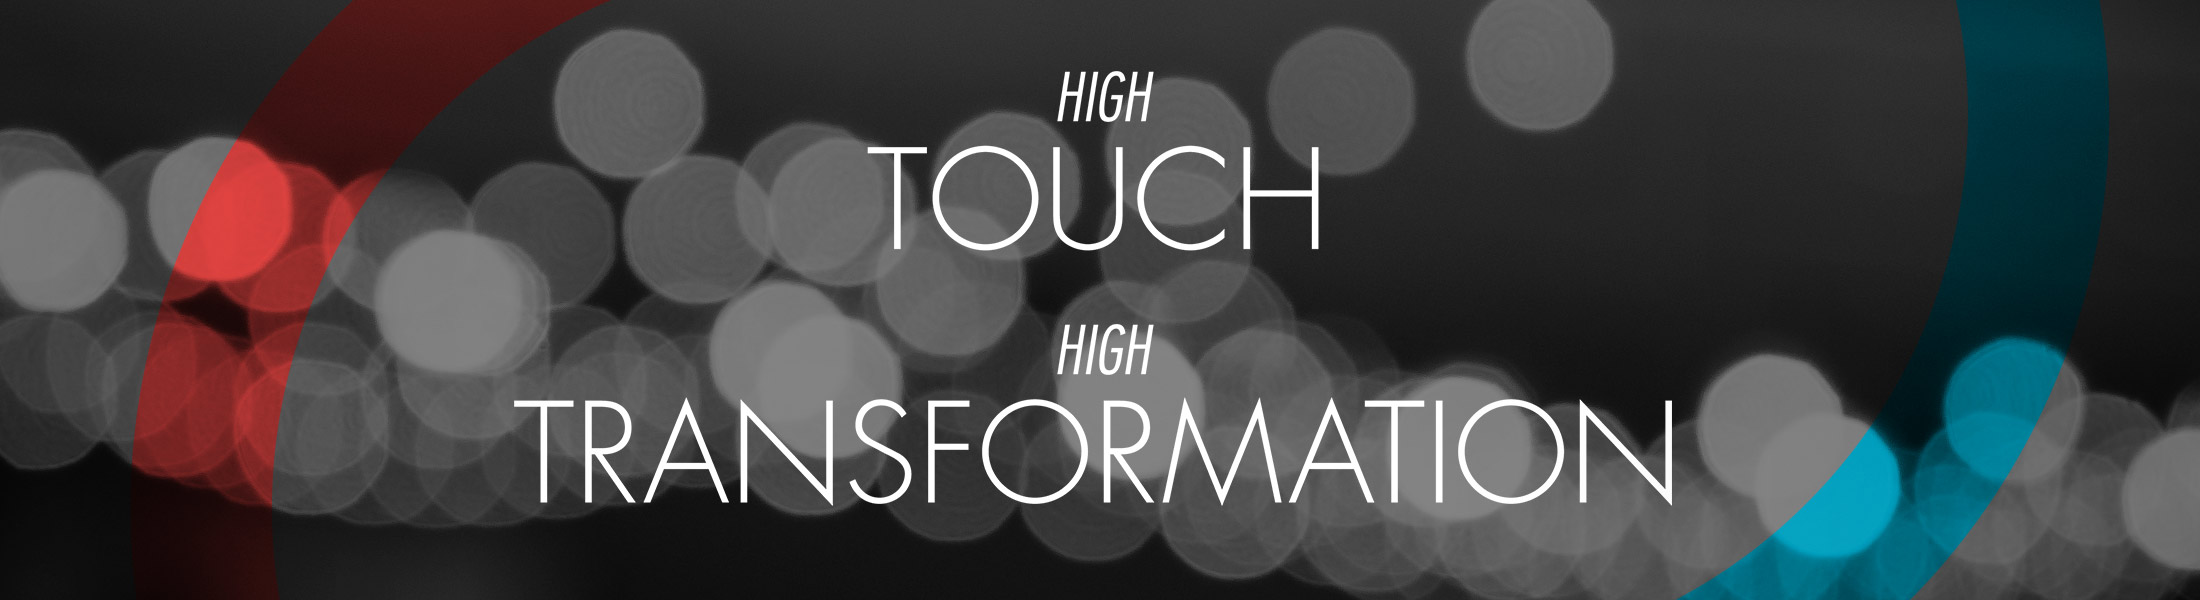 High Touch, High Transformation: Six student stories of not only powerful education, but of true life change.